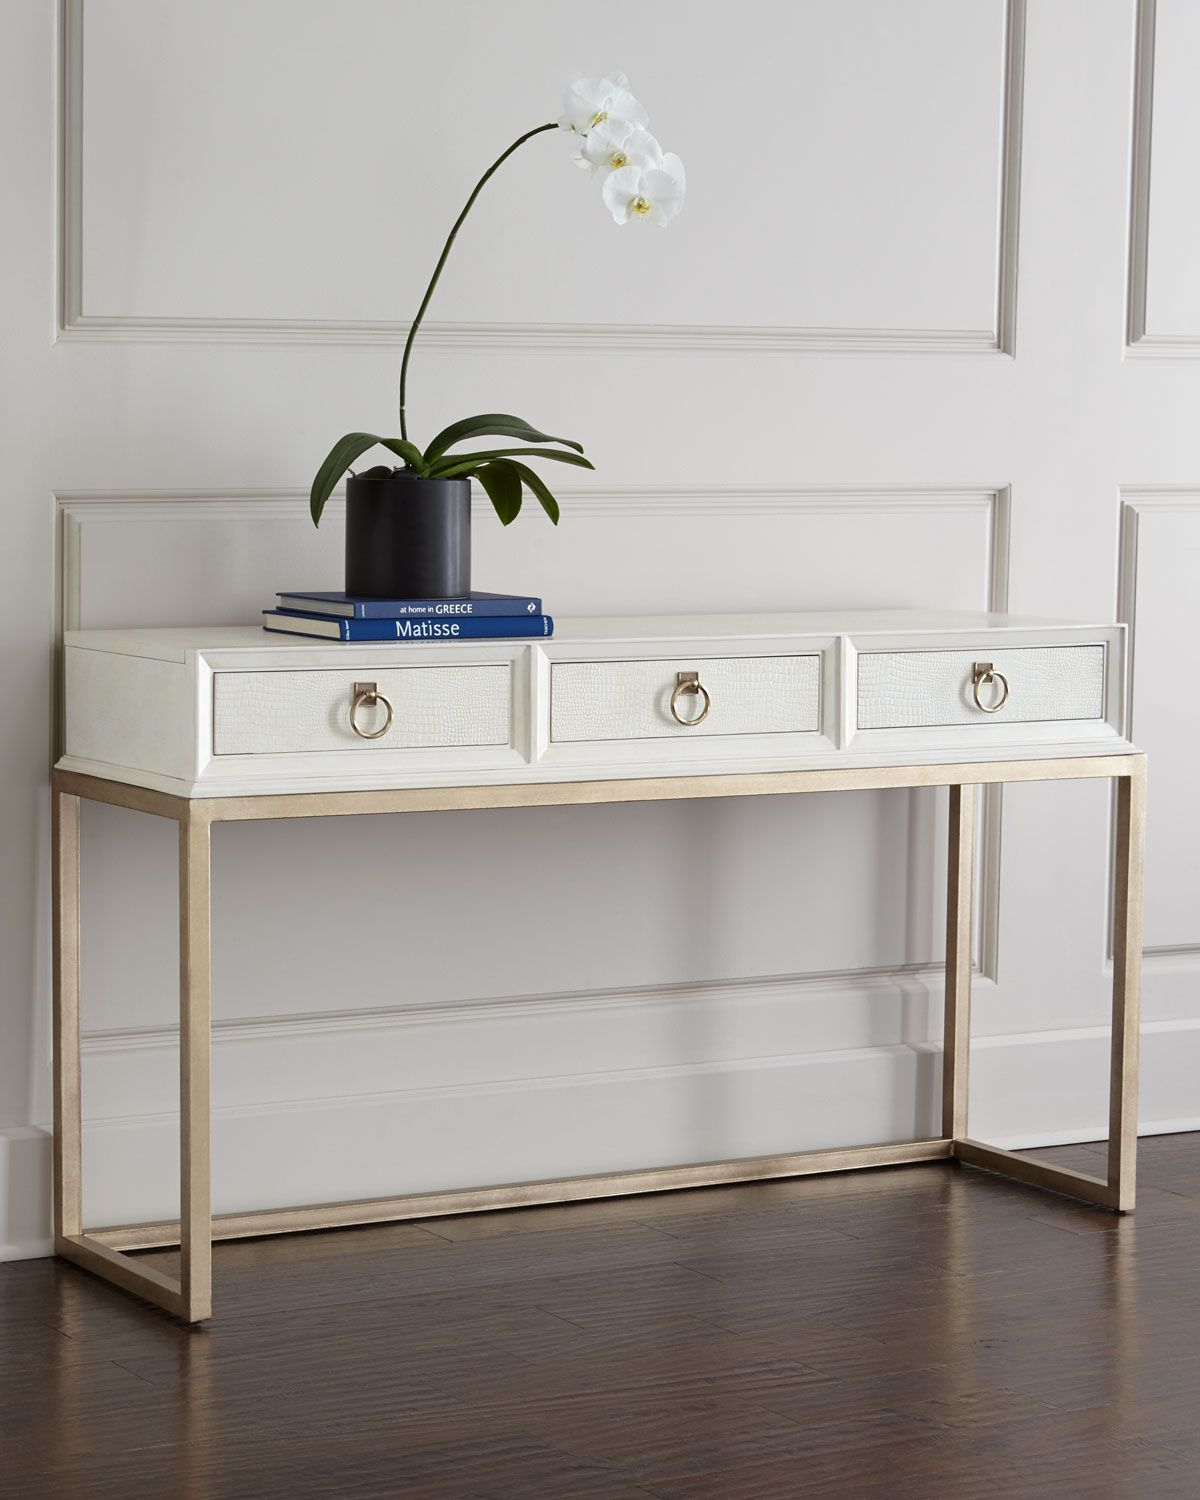 daisy console horchow copy cat chic gallerie hayden white lacquer accent table decorating entryway bath and beyond floor lamps asian style retro bedroom furniture marble top